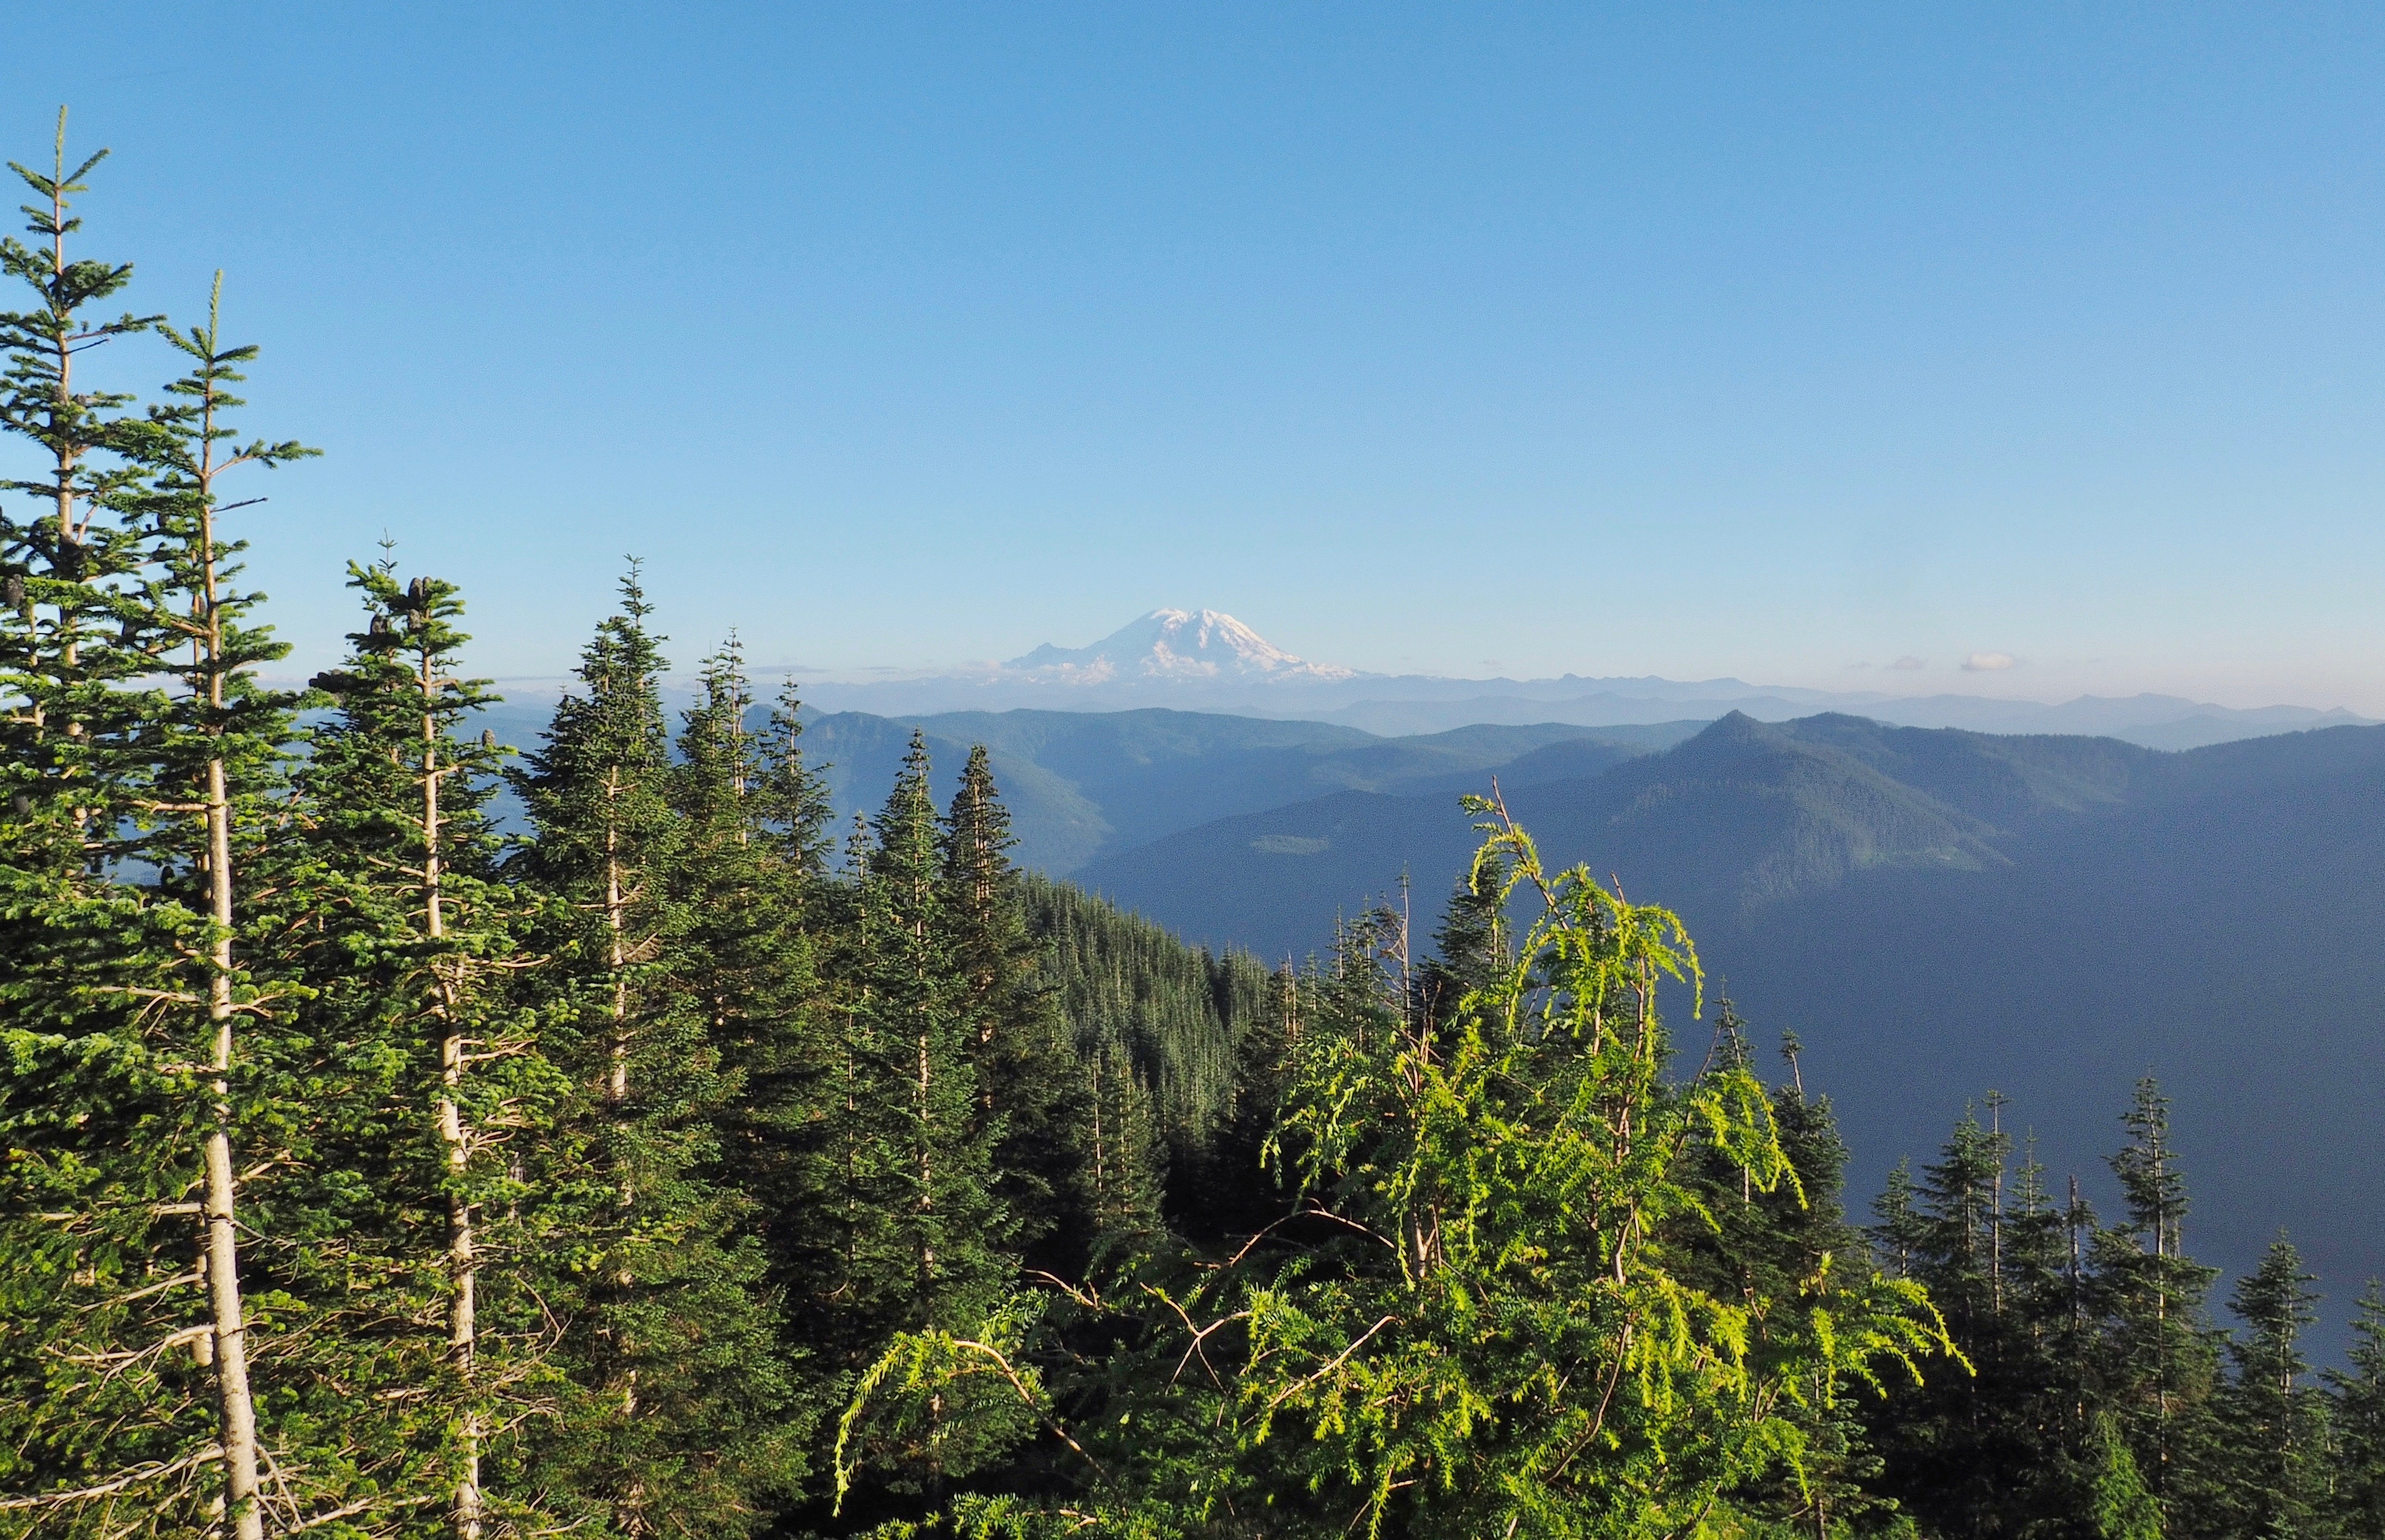 On a cloudless day, Mt. Rainier greets the sight just as the trail clears the forest. Mount Washington Trail, July 26, 2016.